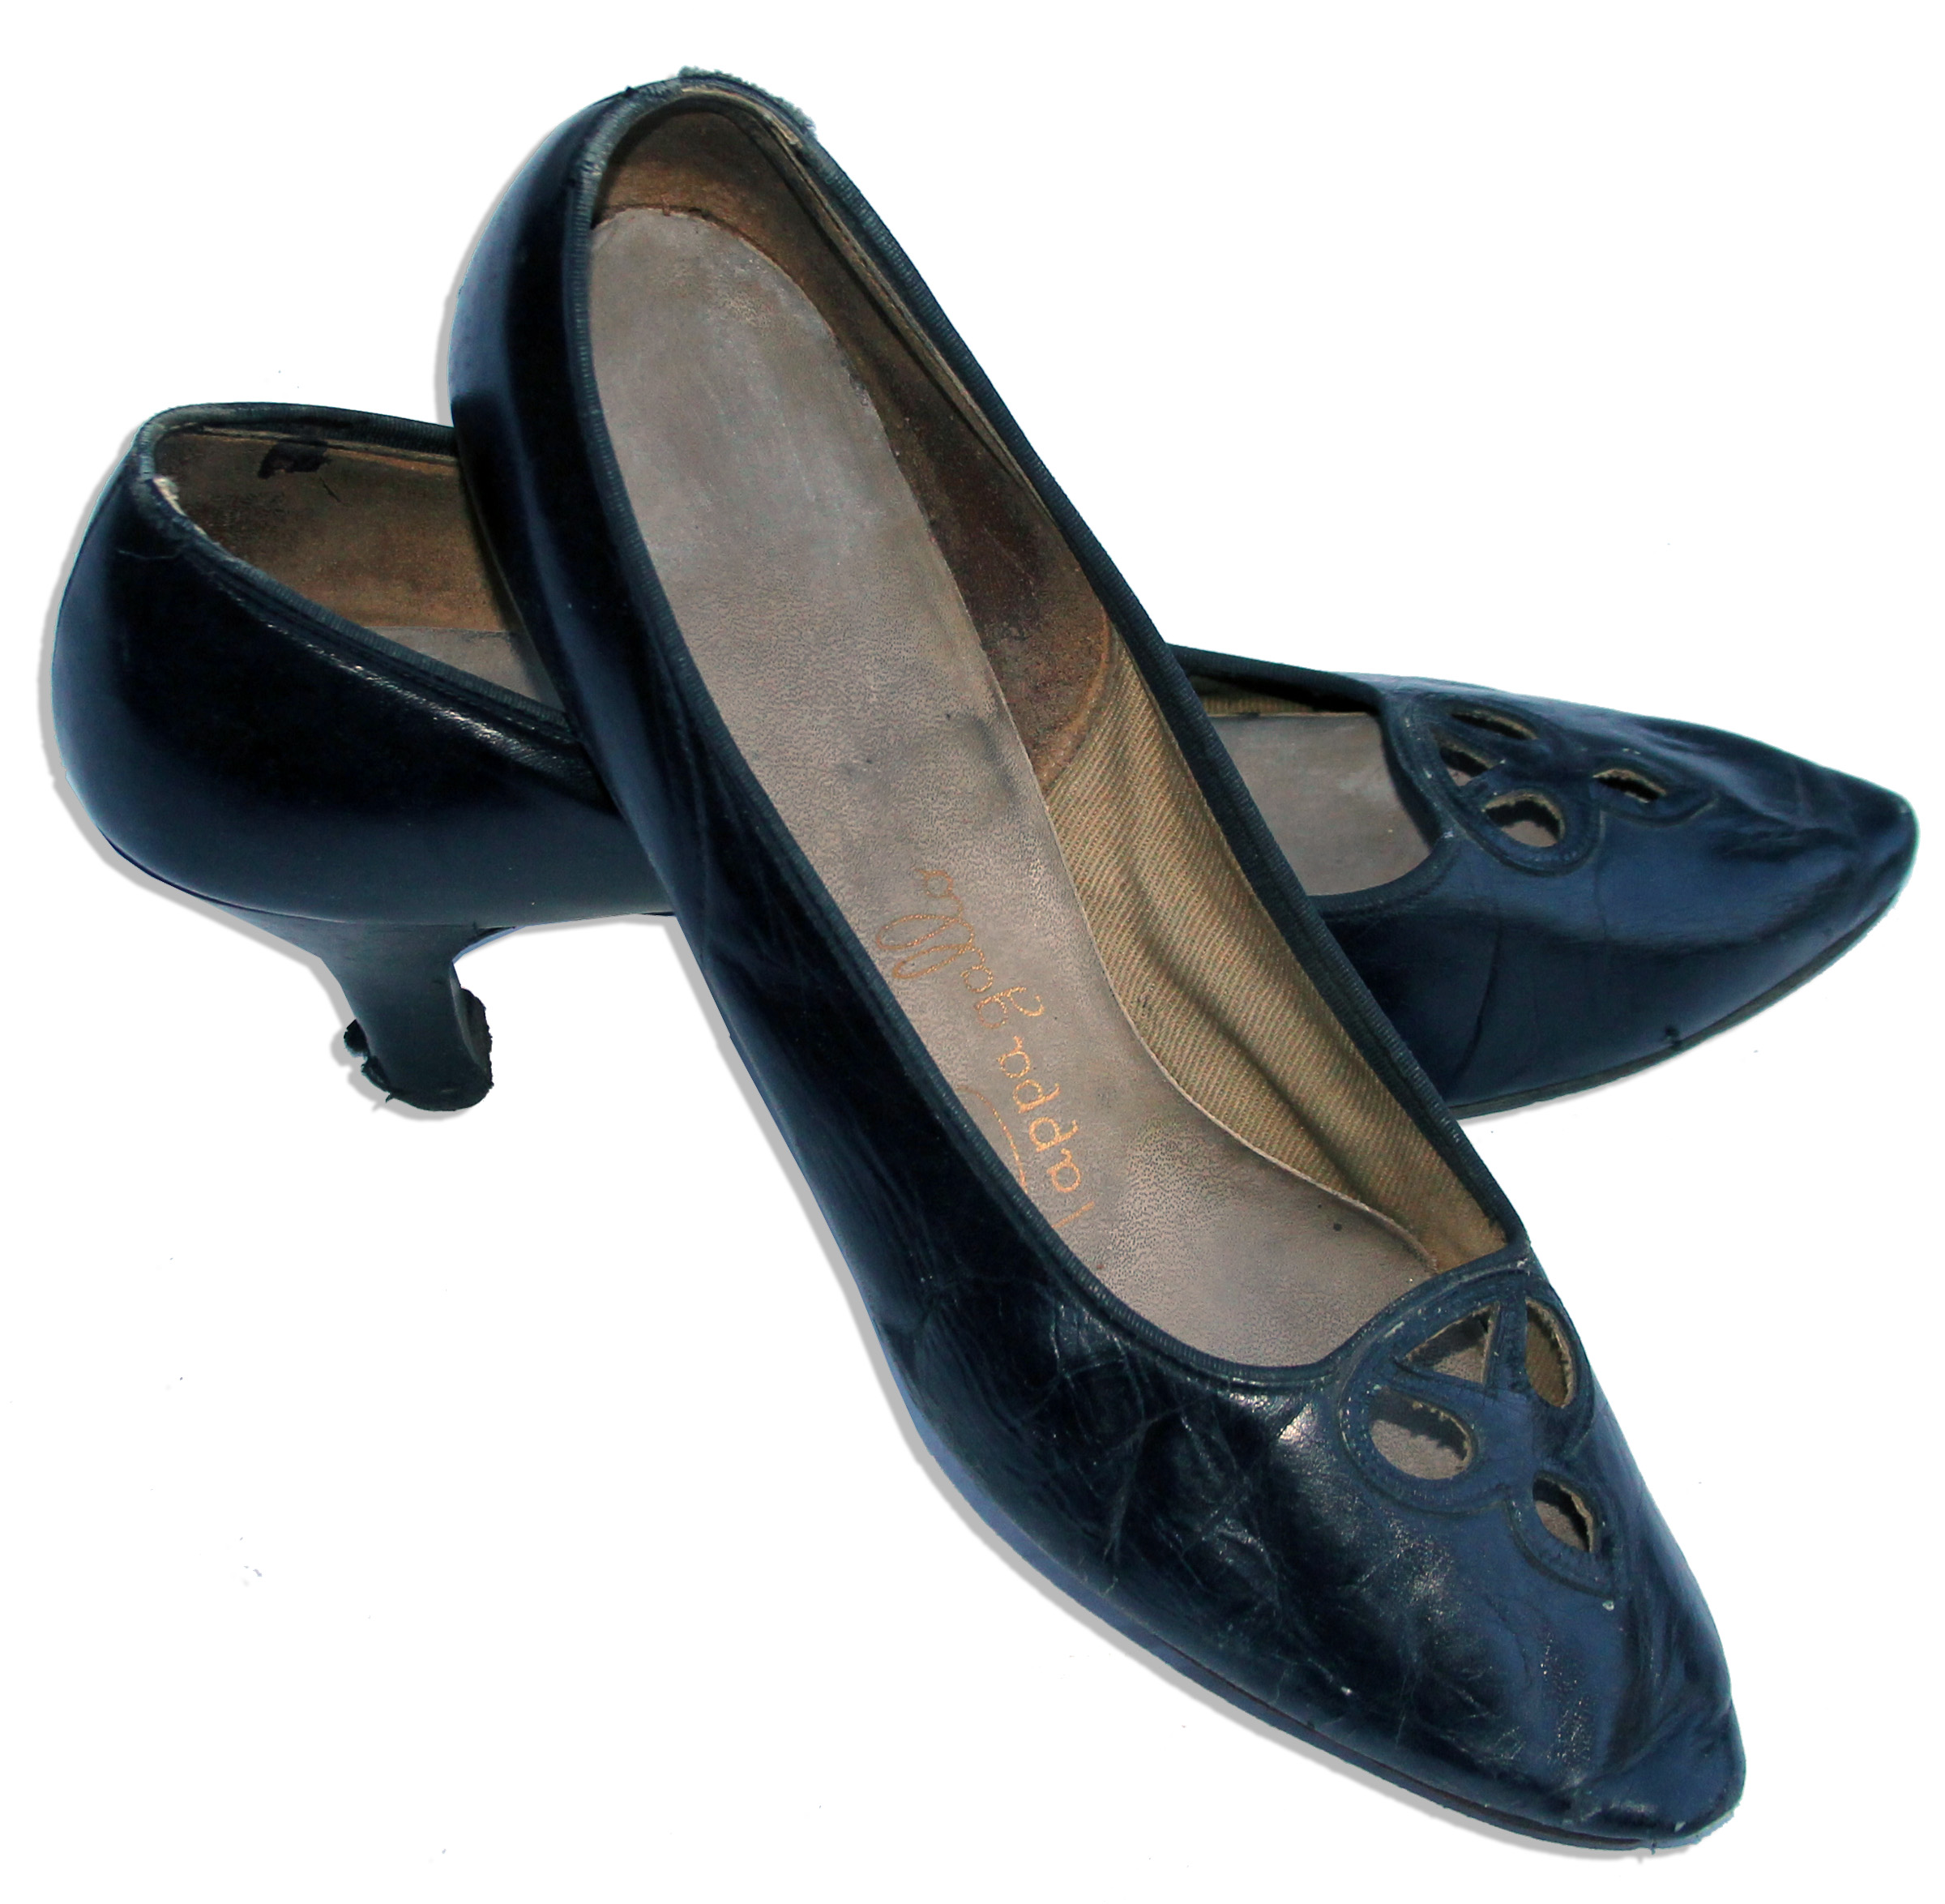 213216f5803e Jackie Kennedy Personally Owned   Worn Shoes -- The Style She Popularized  ...